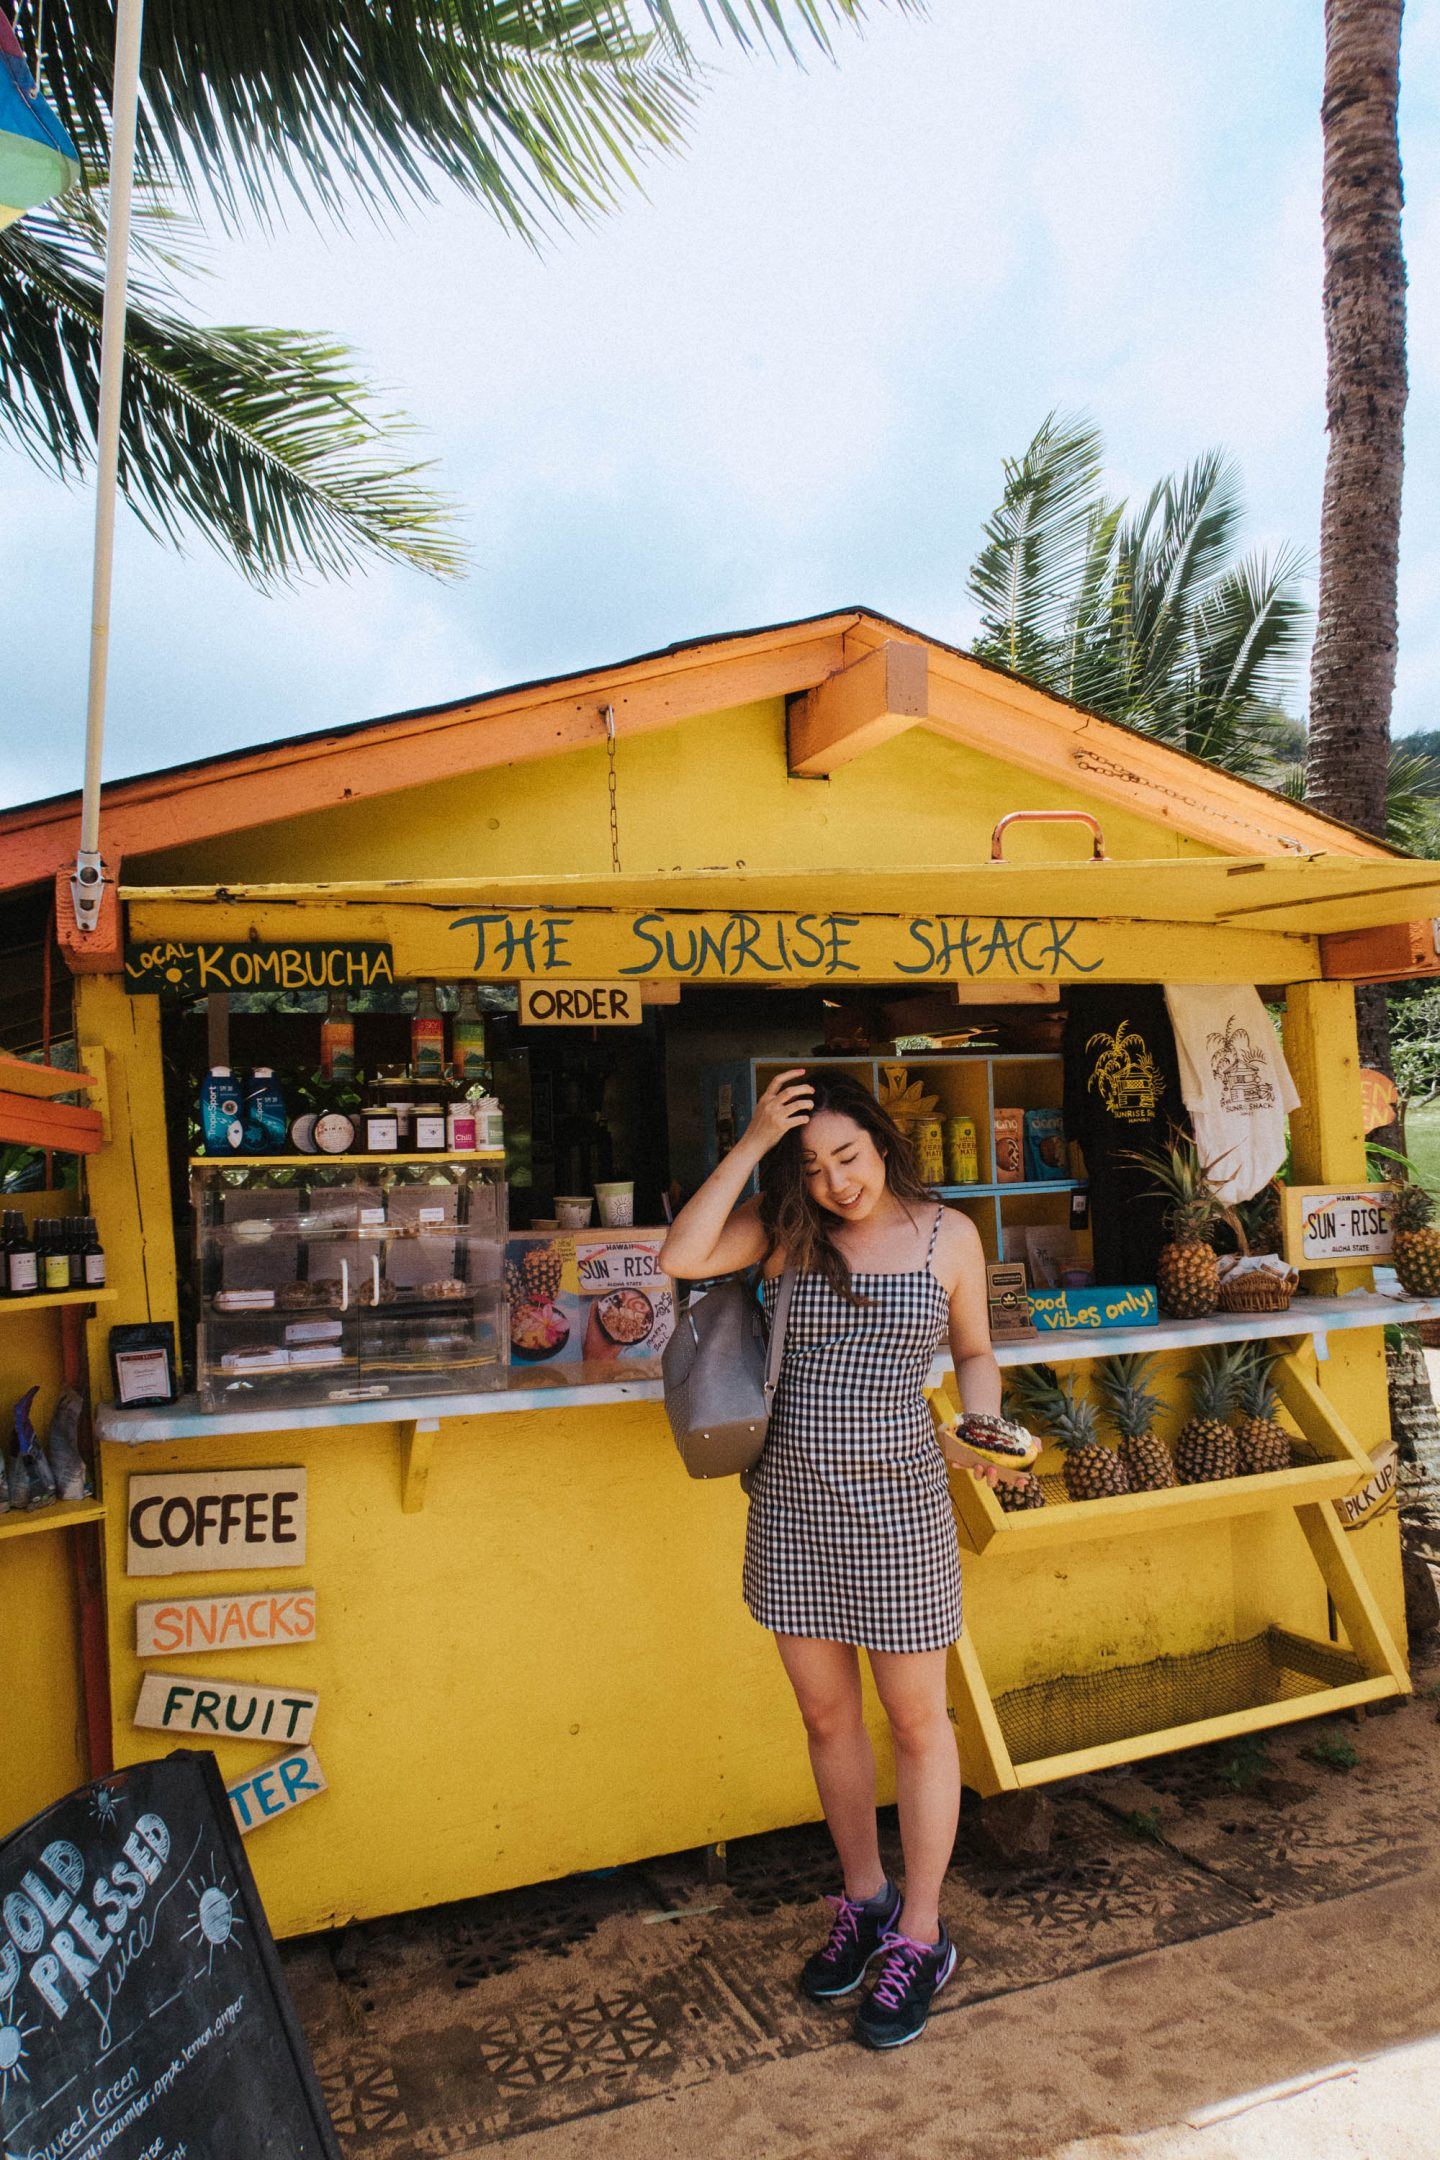 The must stop cute yellow shack of The Sunrise Shack on the drive to Oahu North Shore Hawaii